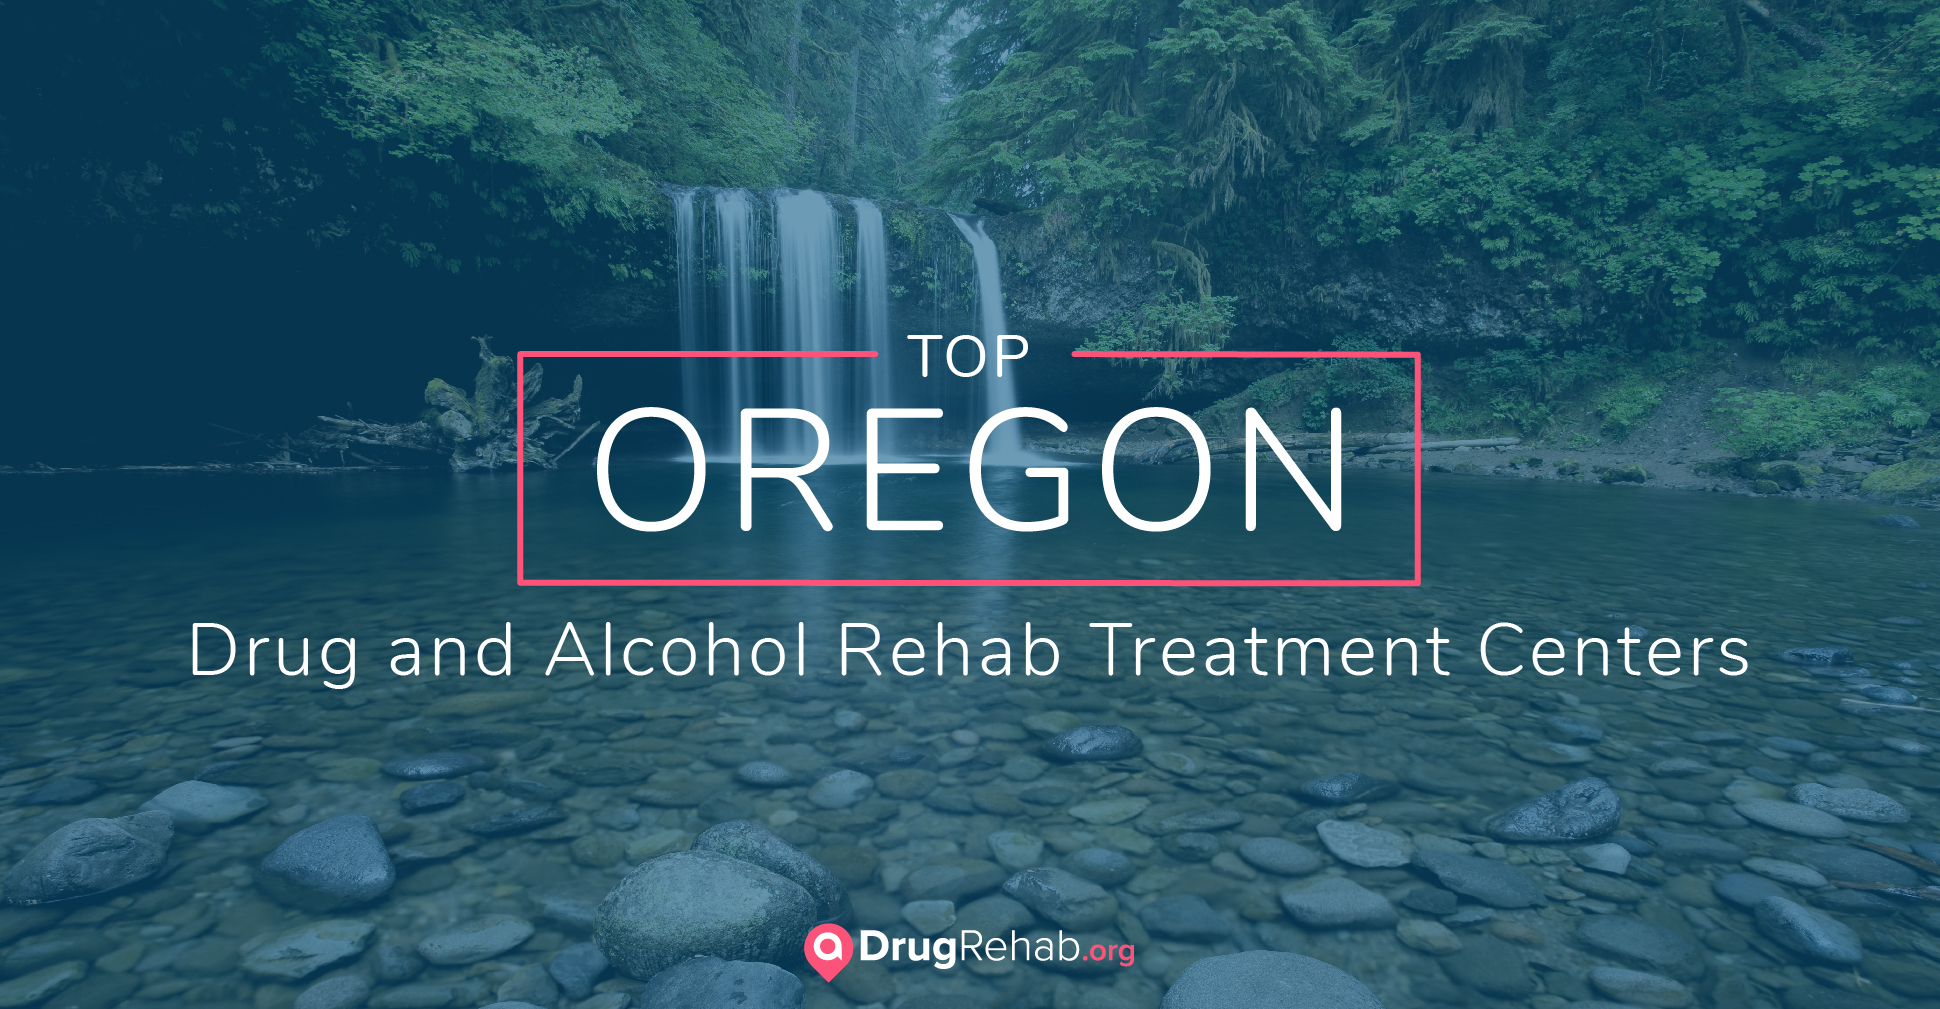 Top Oregon Drug and Alcohol Rehabs, Oregon drug rehab, Oregon alcohol rehab, Oregon drug rehab treatment